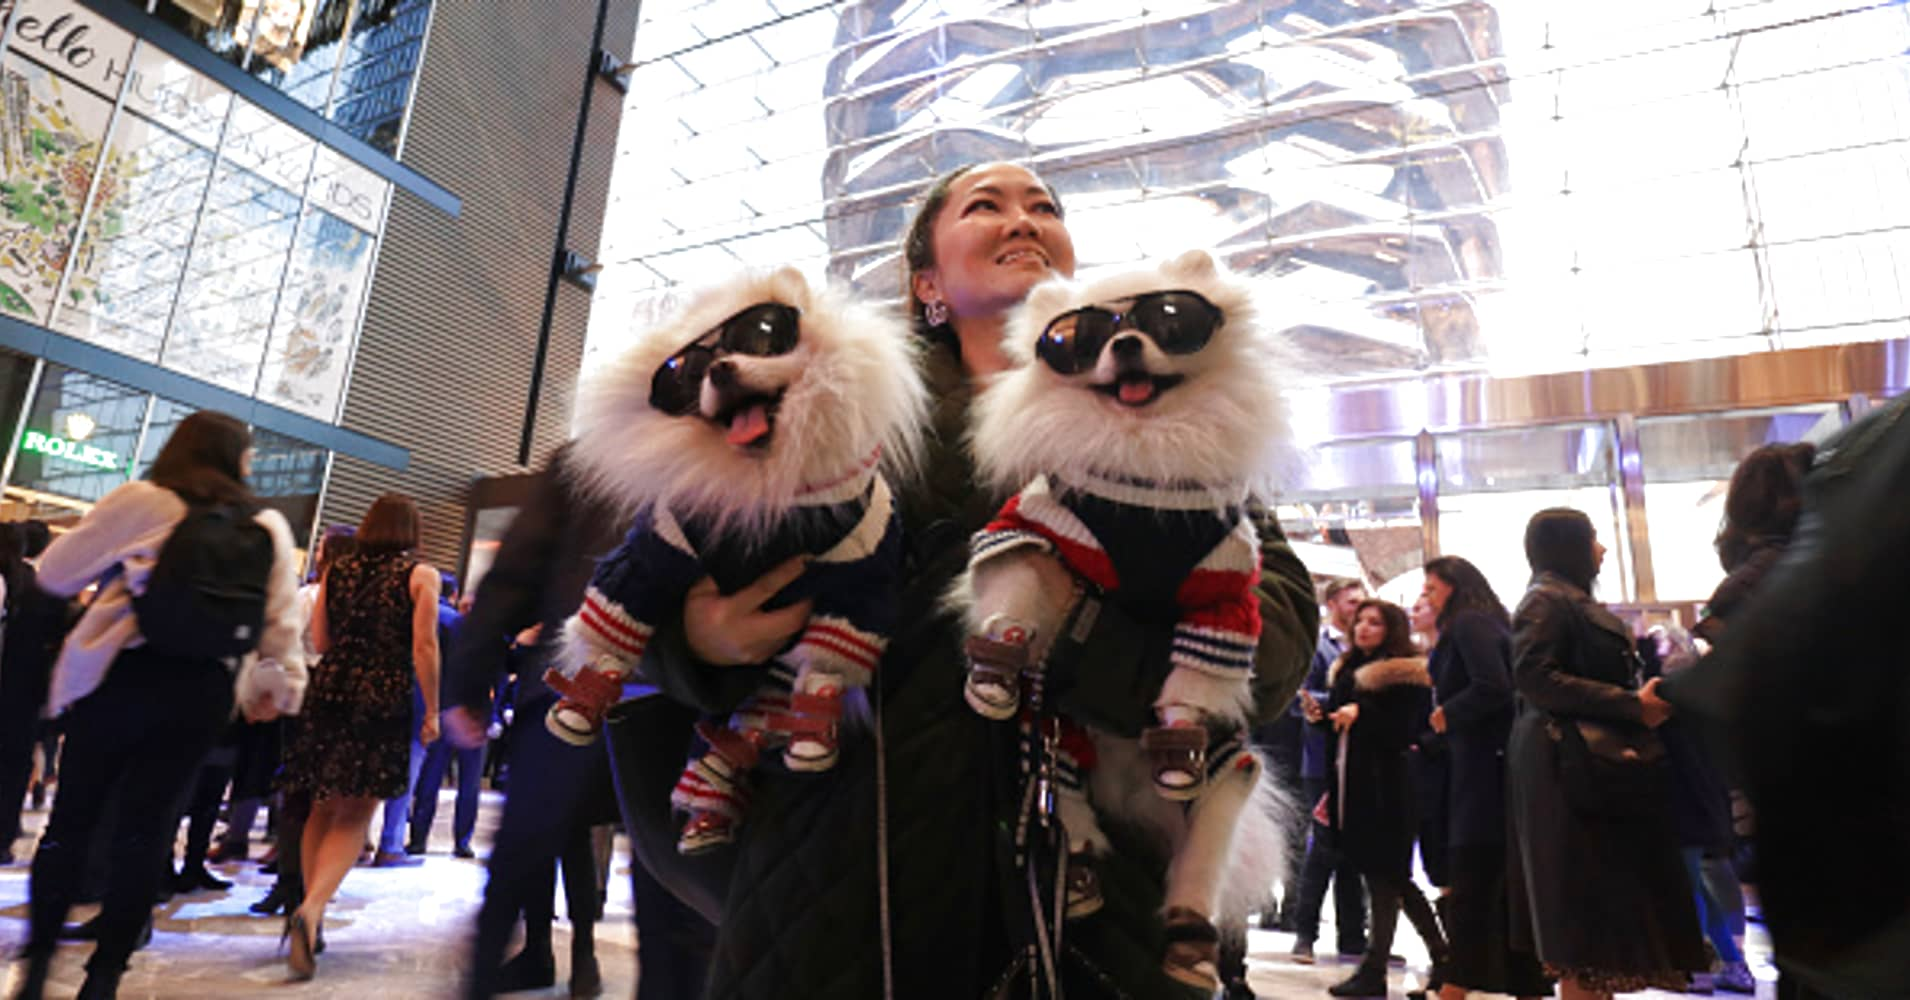 Designer Chong Cha holds her dogs Zuzu and Zunky while attending a preview event at the Shops at Hudson Yards on March 14, 2019 in New York City.